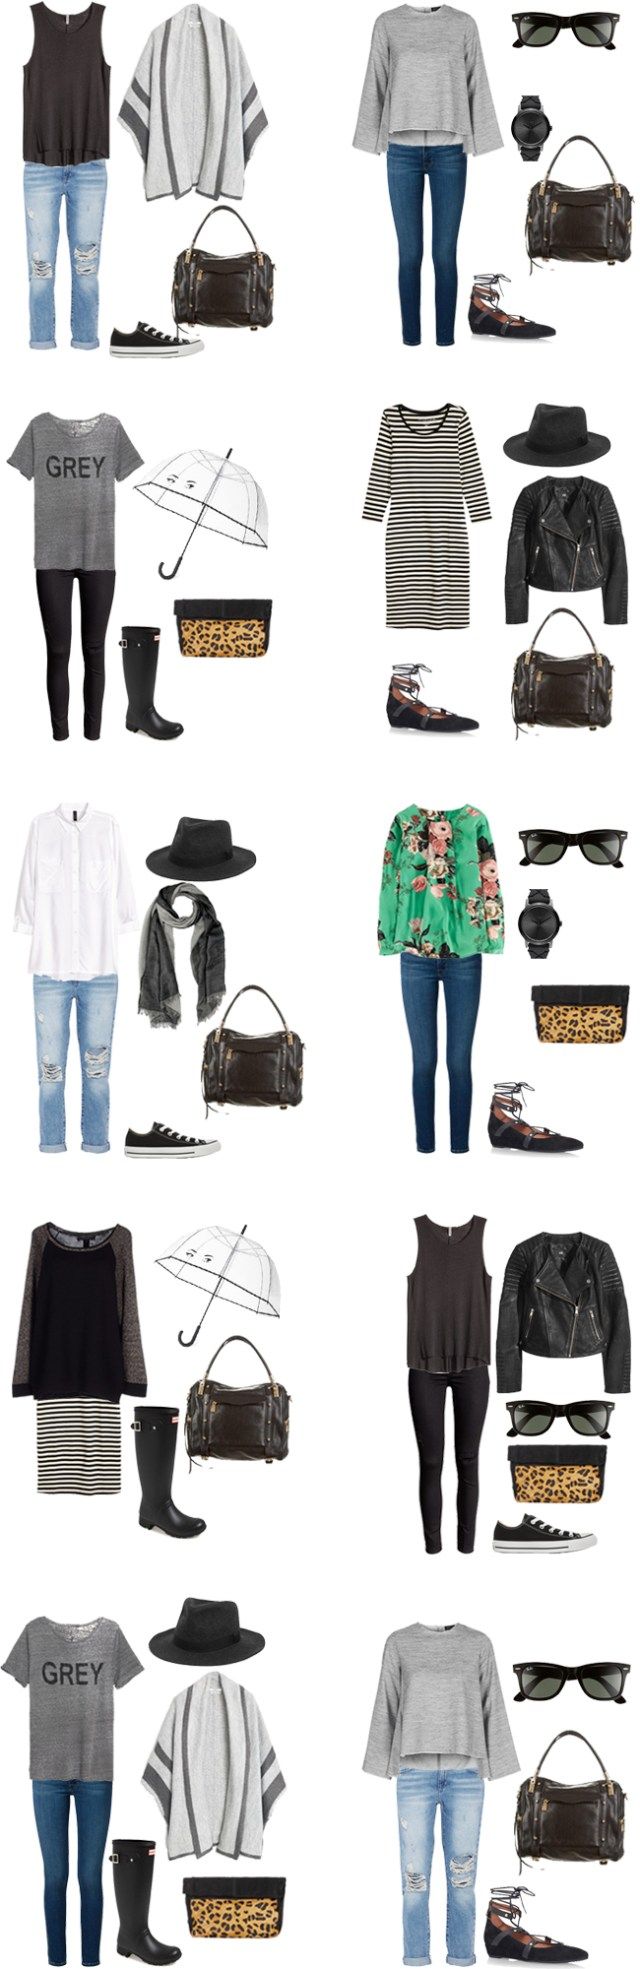 What to Wear in Dublin Outfit Options 1-10 #travellight #packinglight #traveltrips #packinglist #travel